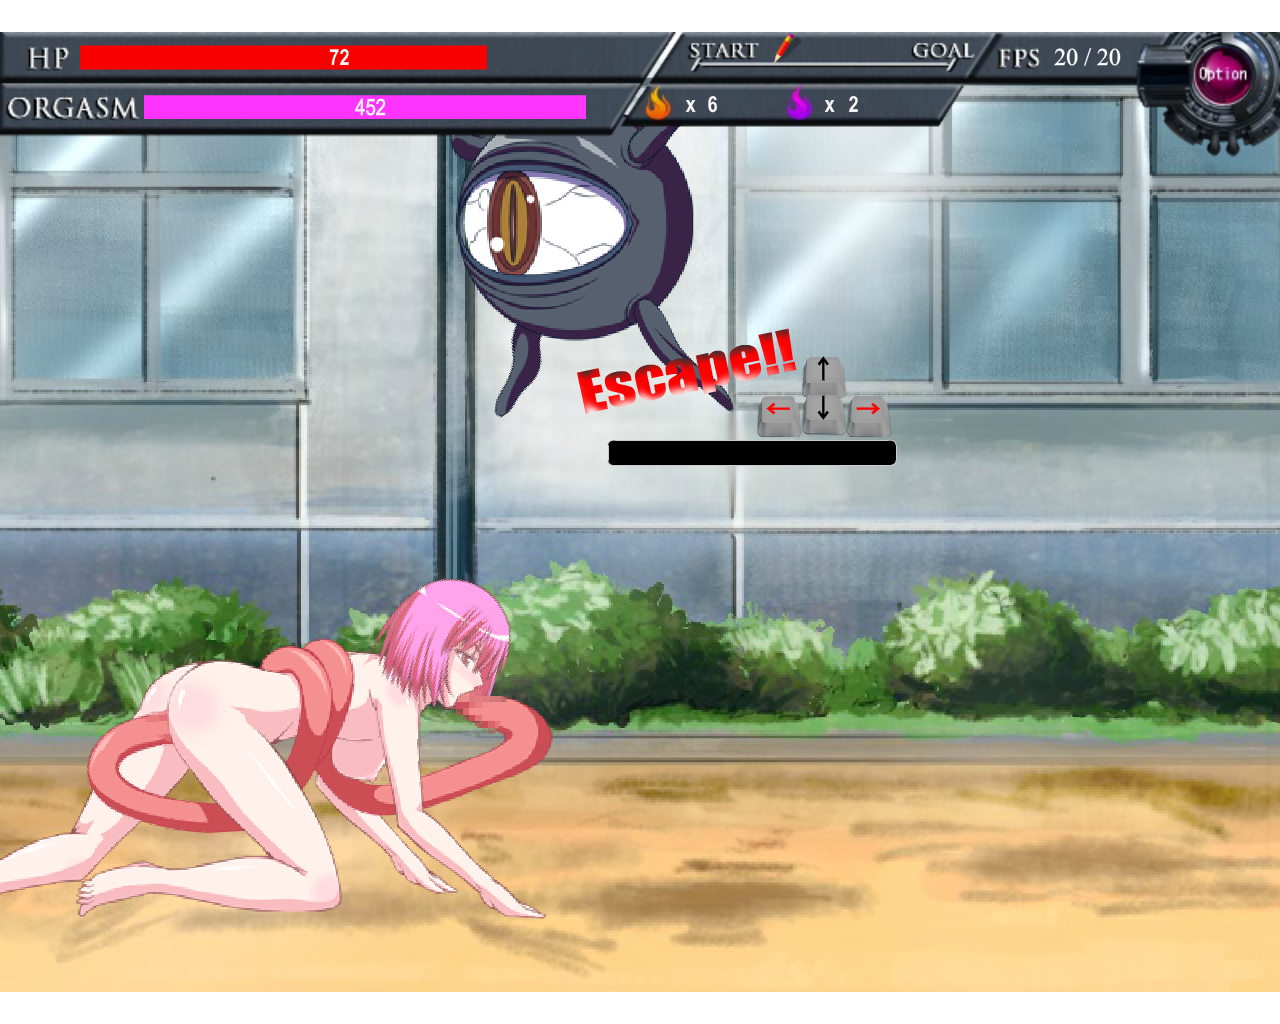 Porn flash game download the